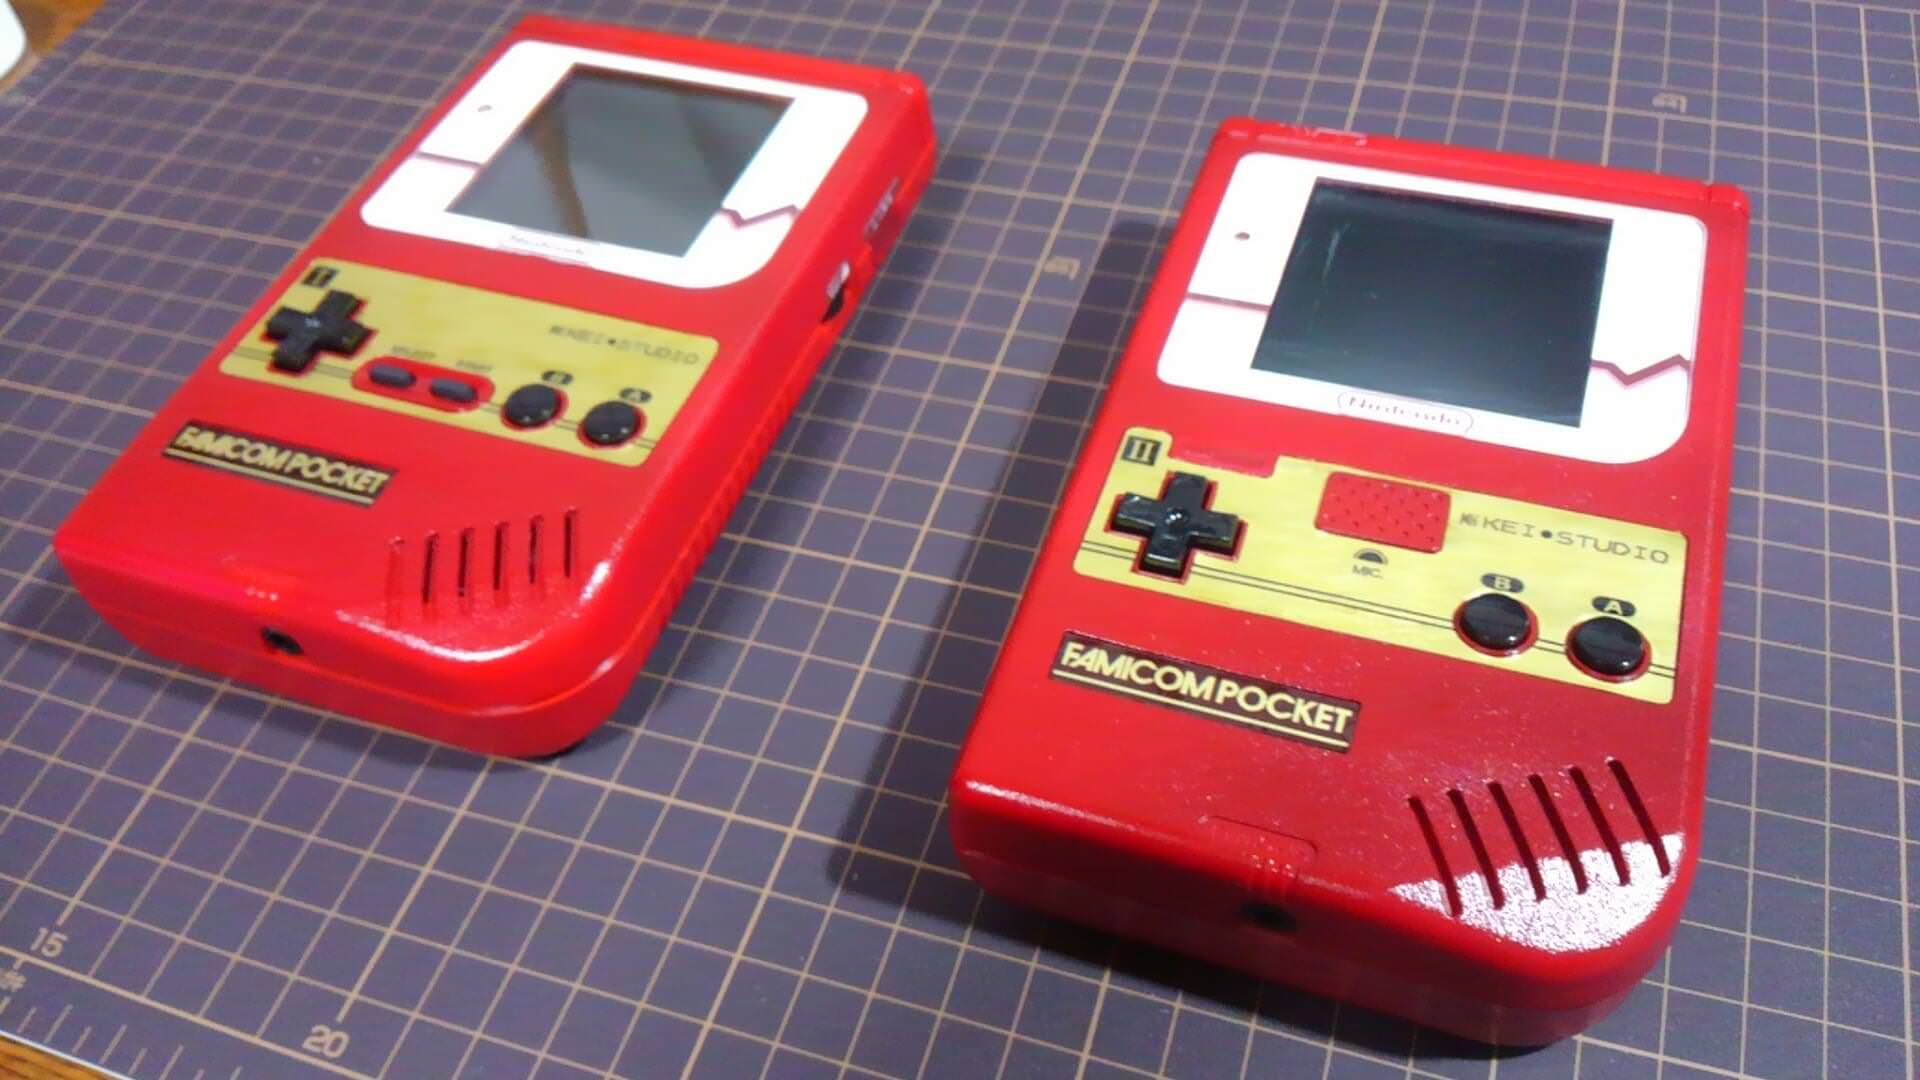 famicon-pocket_1